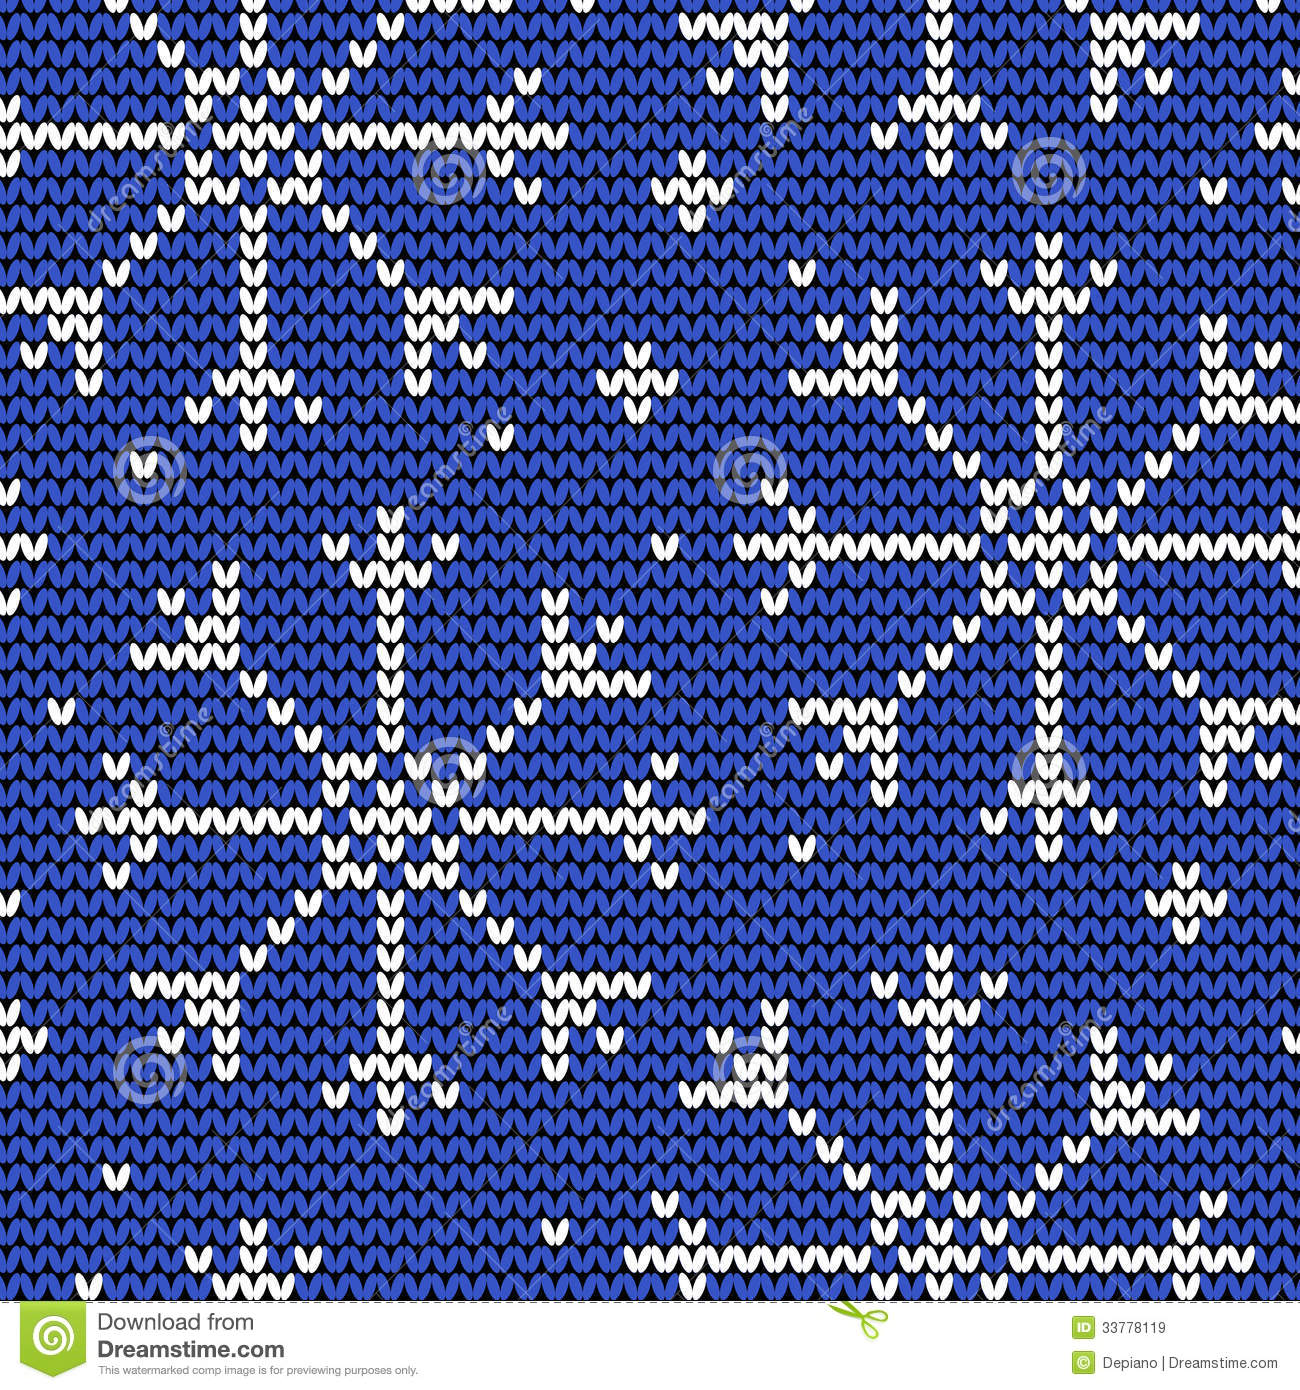 Snowflake Jumper Knitting Pattern : Knitted Seamless Winter Pattern With Snowflakes Royalty Free Stock Images - I...